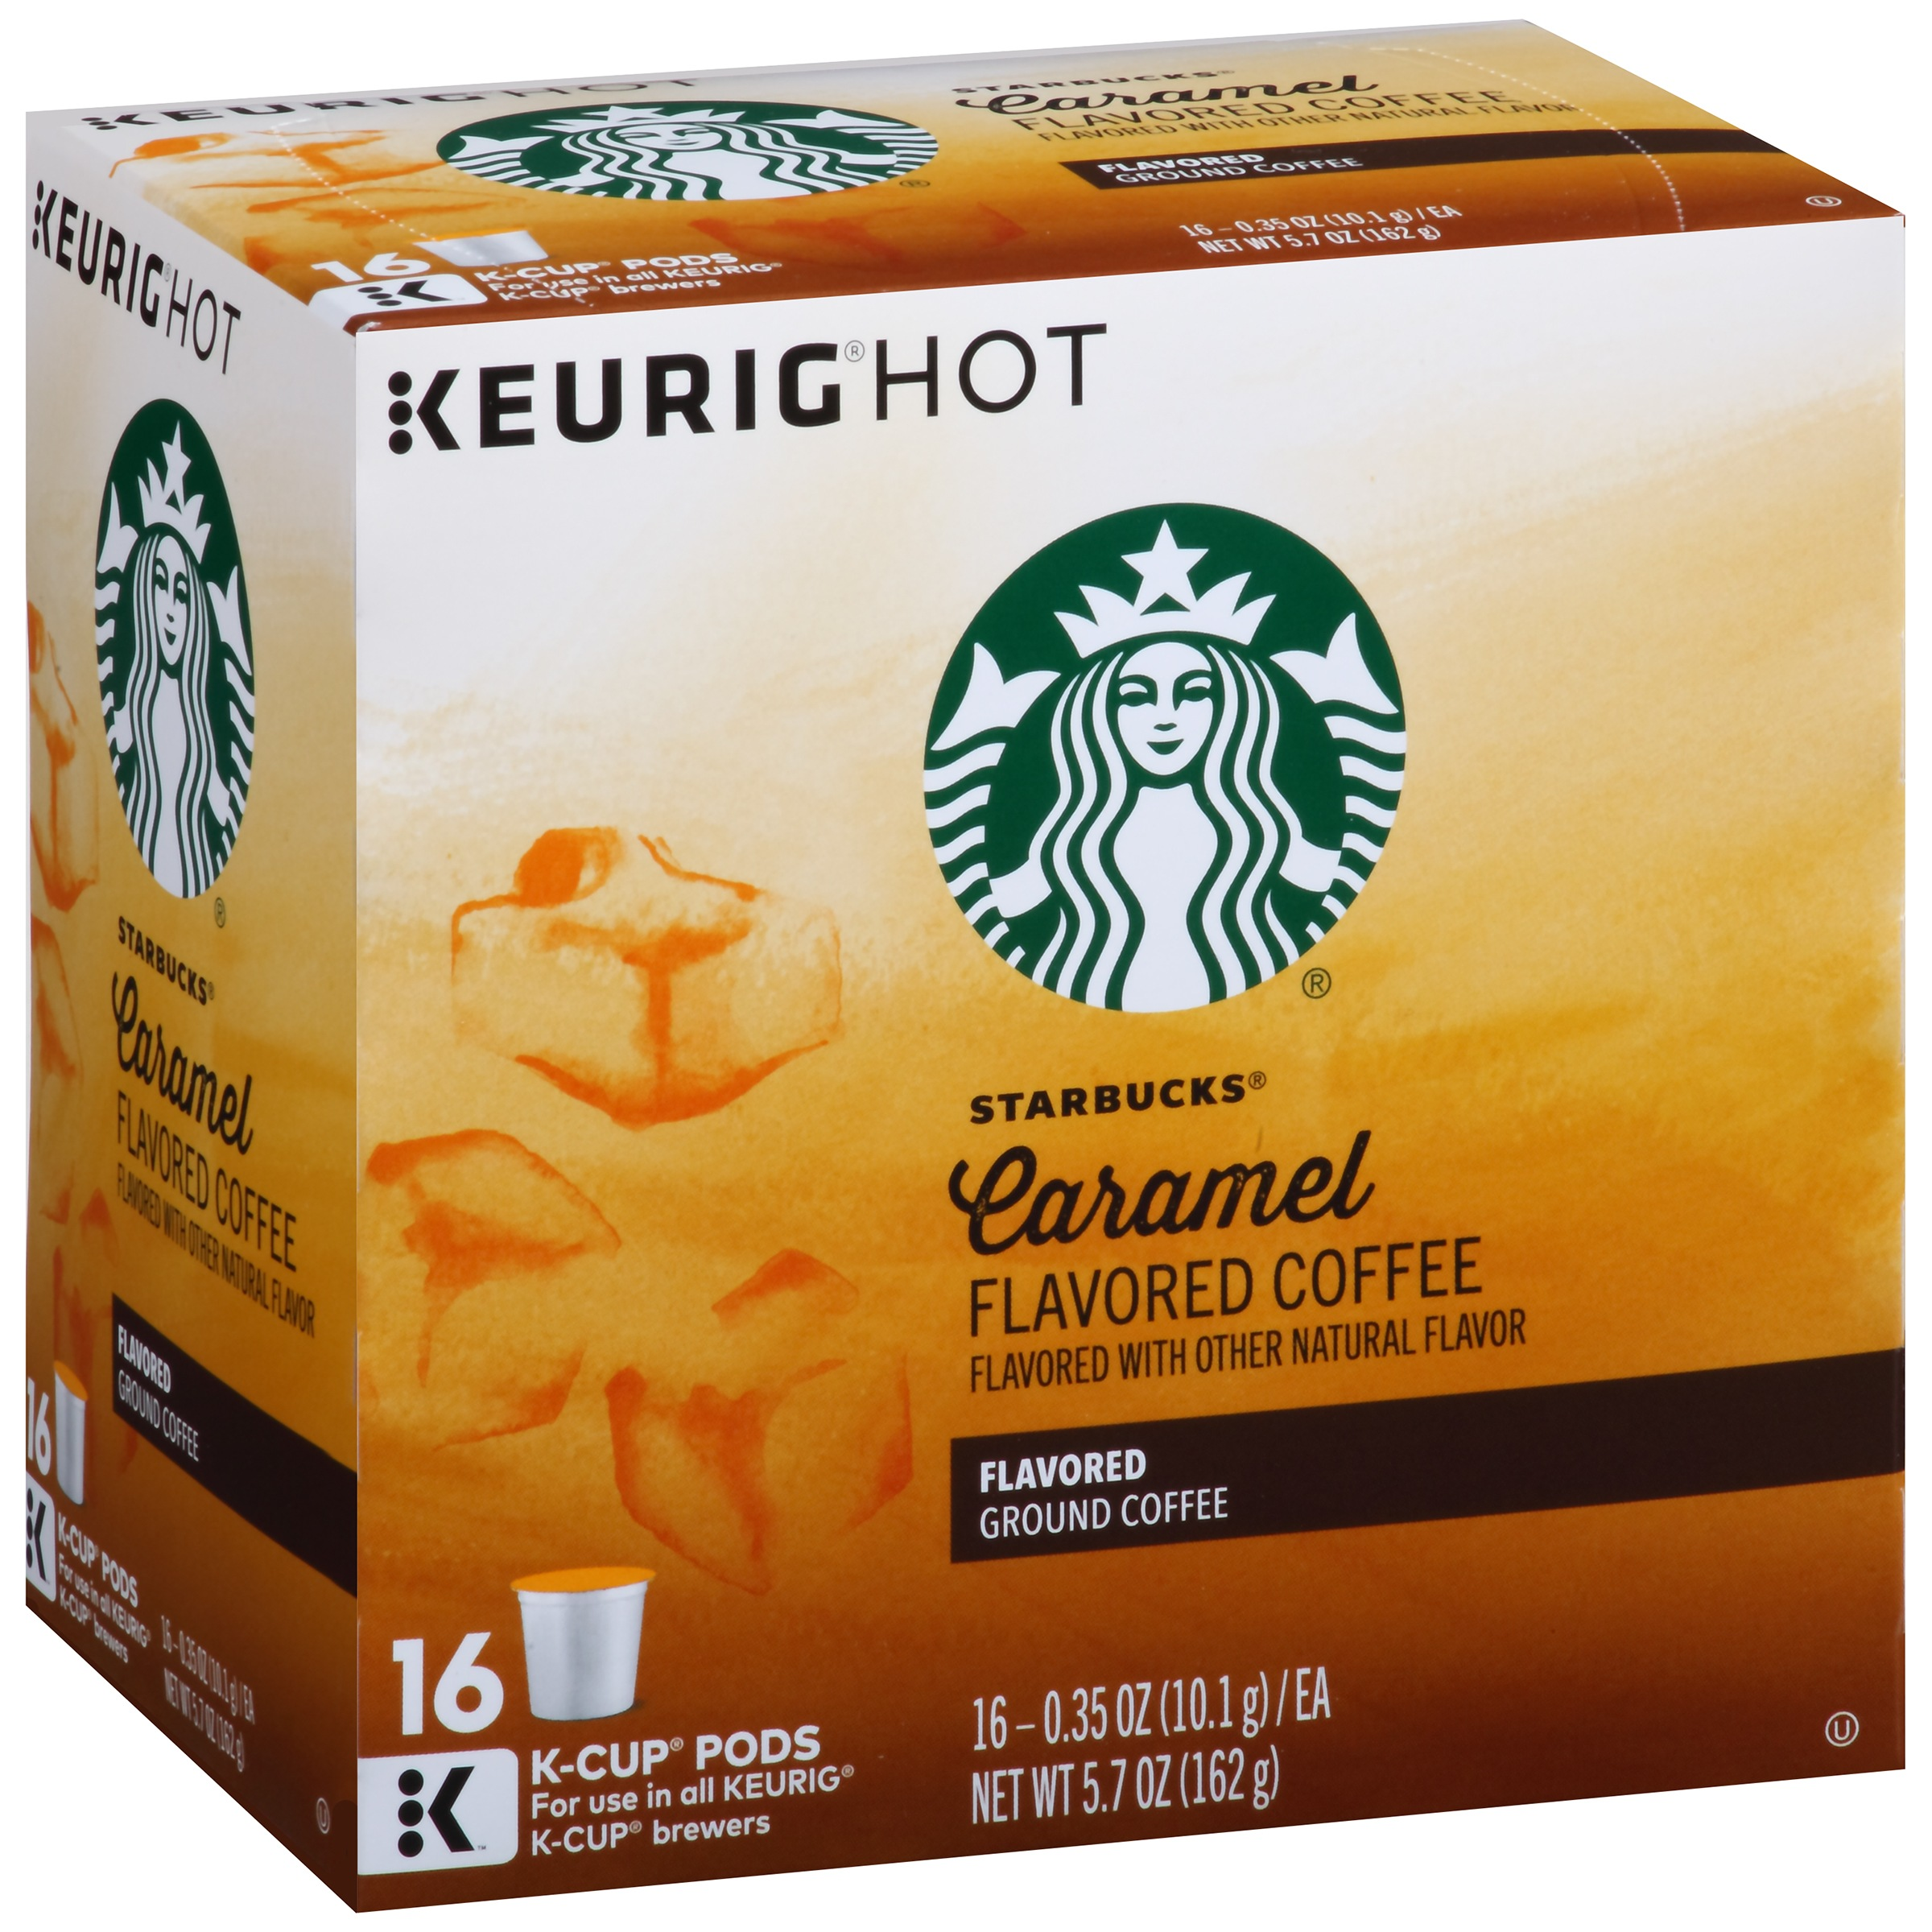 Starbucks Caramel Coffee K-cups, 0.35 oz, 16 ct by STARBUCKS COFFEE COMPANY